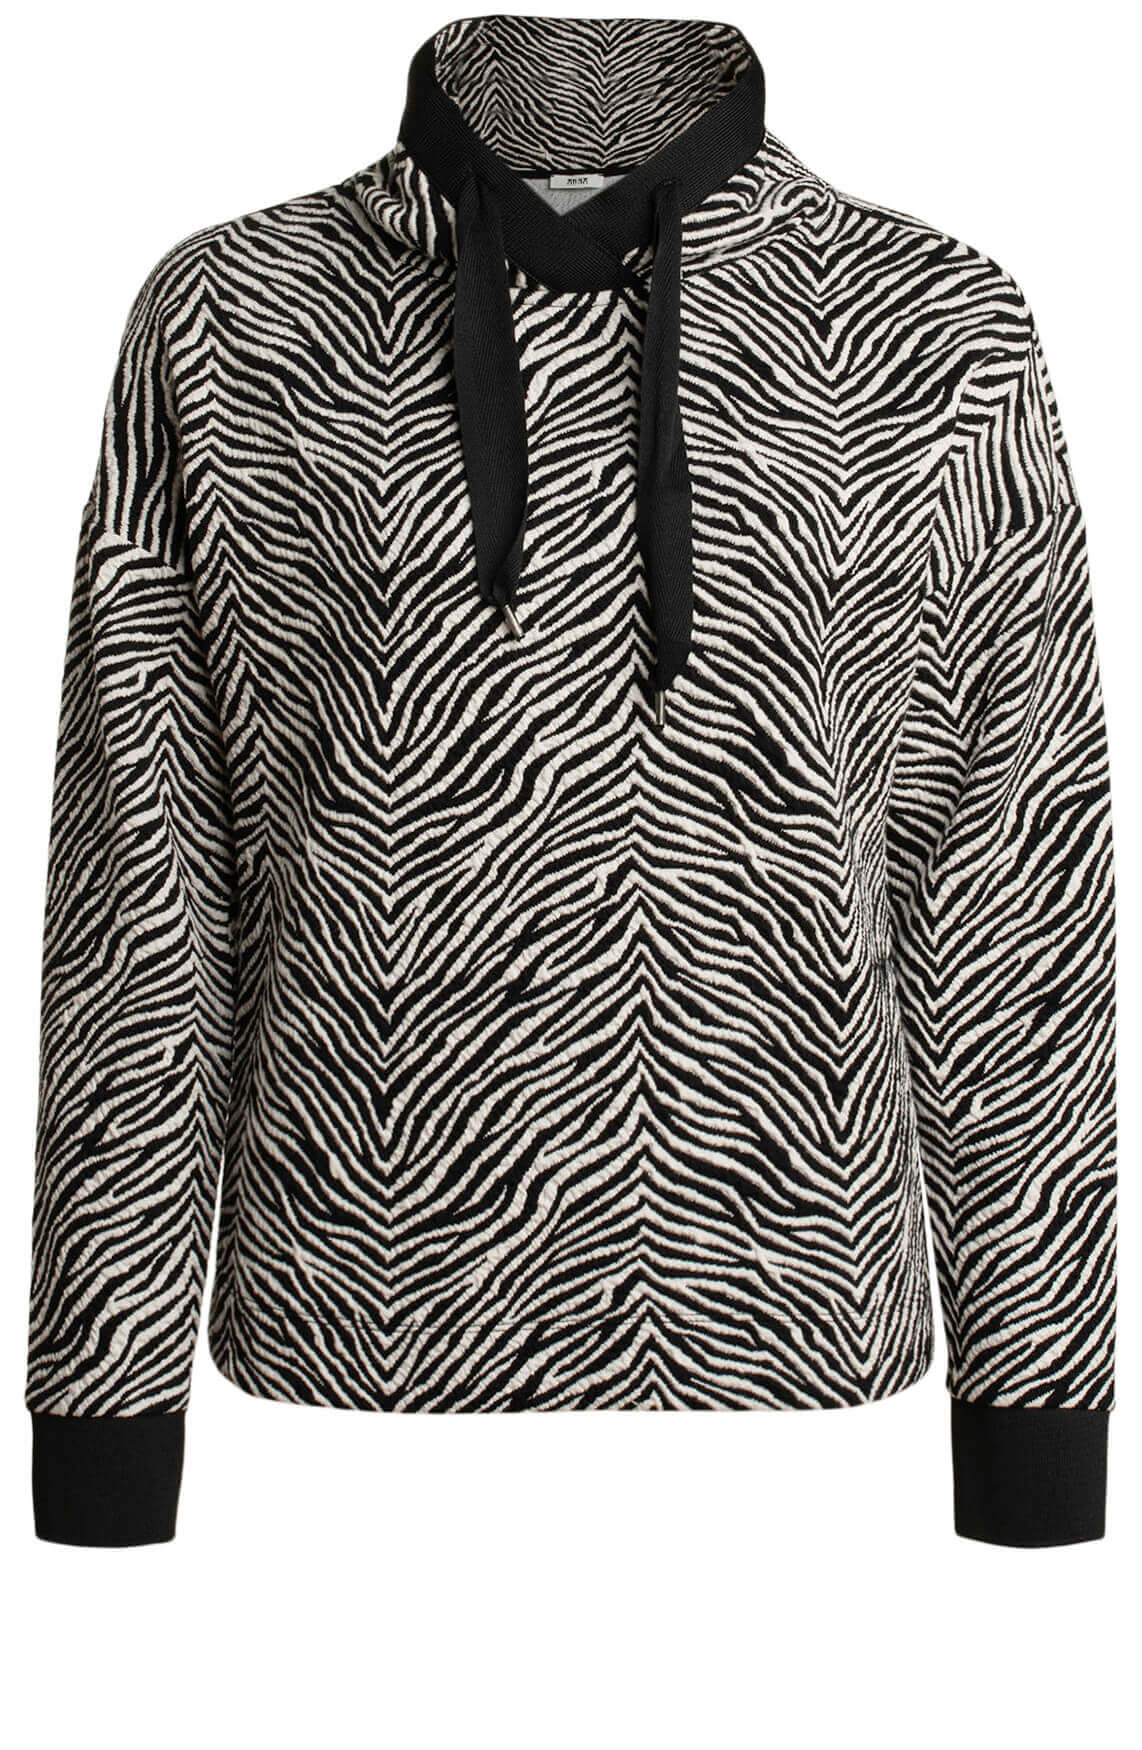 Anna Dames Zebra sweater wit